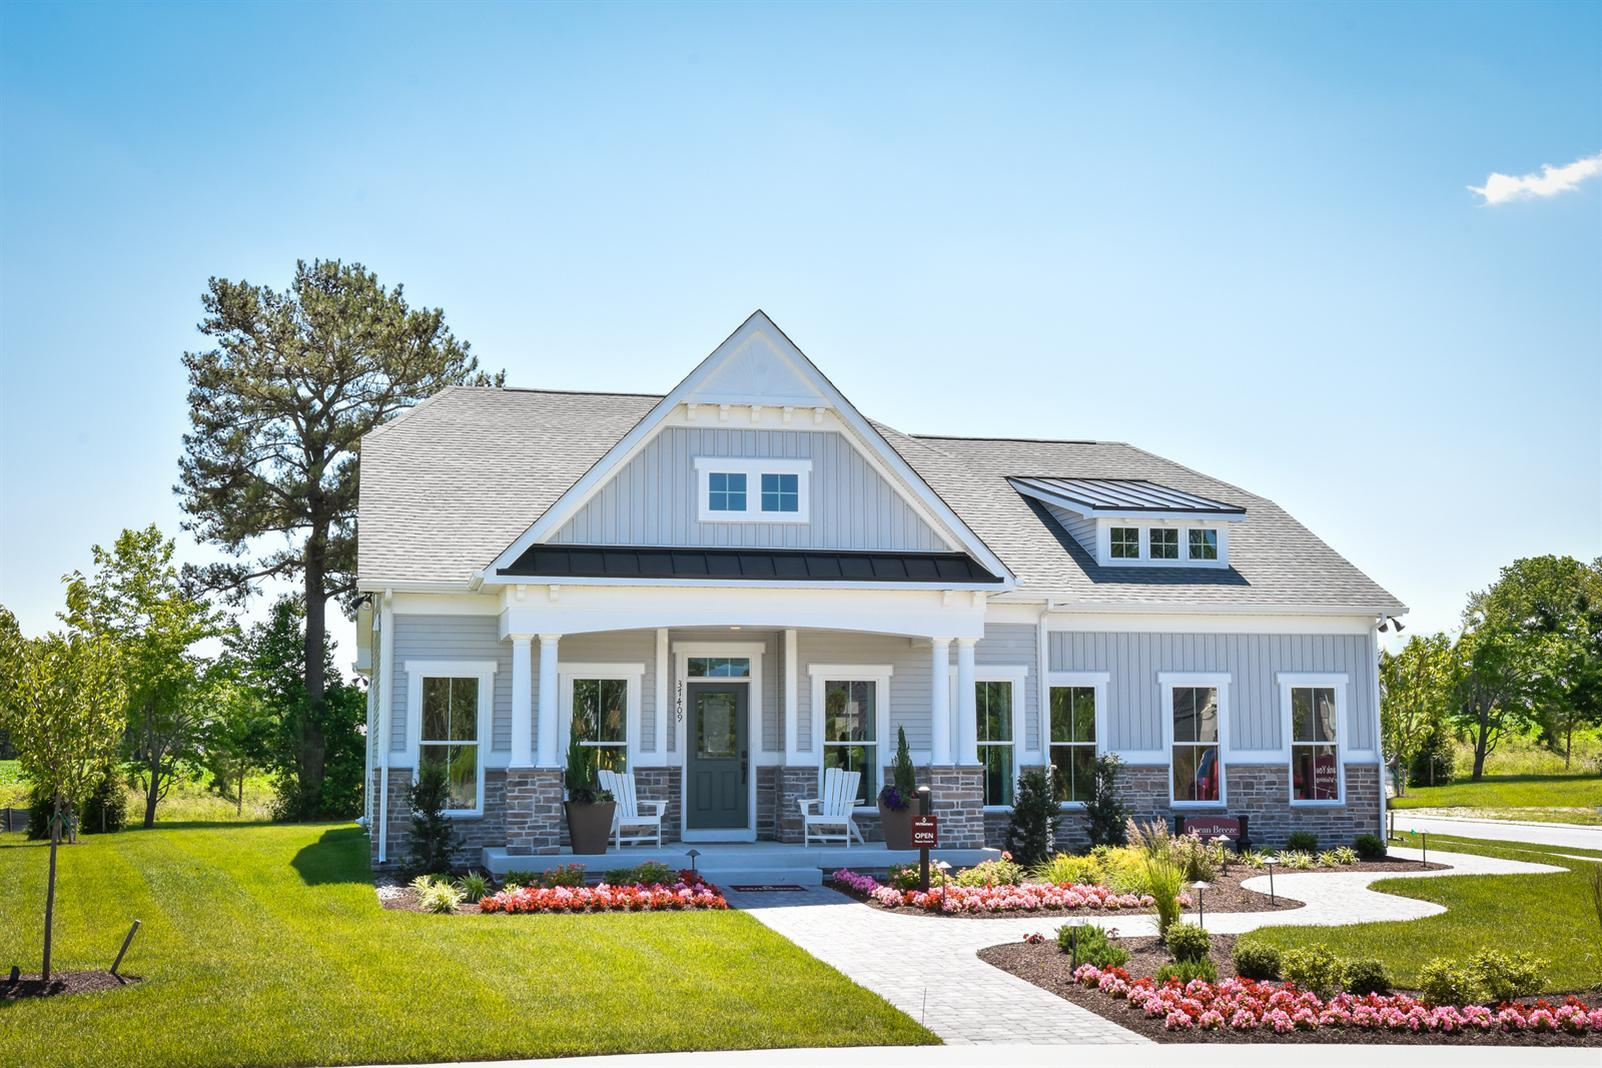 The Reserves by NVHomes New Homes for Sale - Ocean View, DE - 13 Photos |  Trulia